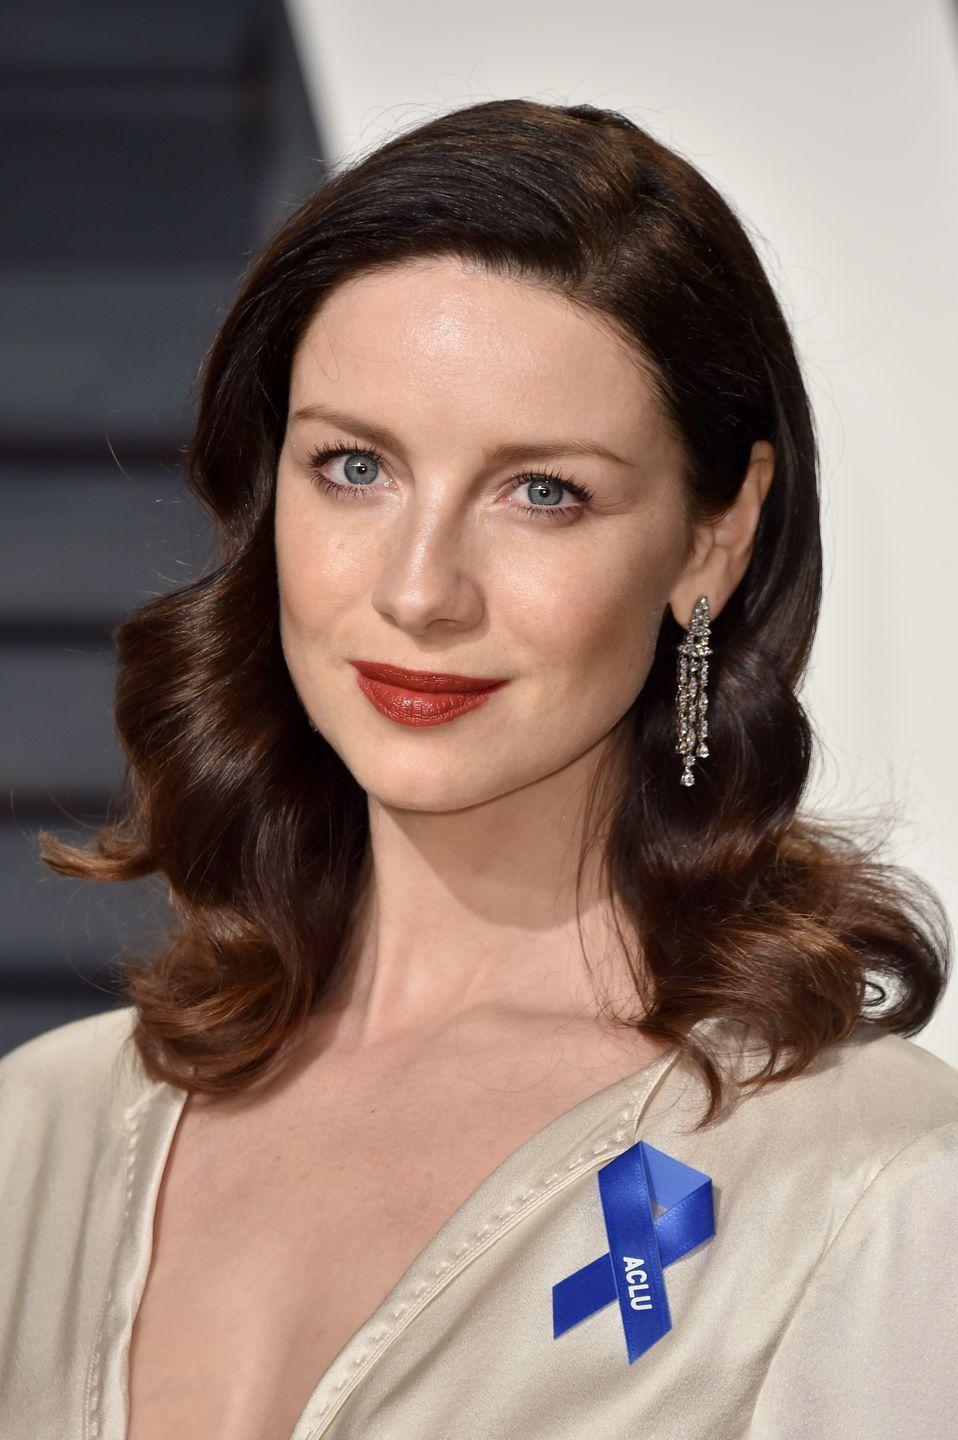 """<p>Just three weeks before production was due to start, the casting director still hadn't found her Claire. They had a couple of actress on hold, but none were quite right. Finally, they saw a clip of <a href=""""https://www.vanityfair.com/hollywood/2016/10/inside-outlanders-hunt-for-claire-fraser"""" rel=""""nofollow noopener"""" target=""""_blank"""" data-ylk=""""slk:Caitriona Balfe and booked her for the gig."""" class=""""link rapid-noclick-resp"""">Caitriona Balfe and booked her for the gig.</a></p>"""